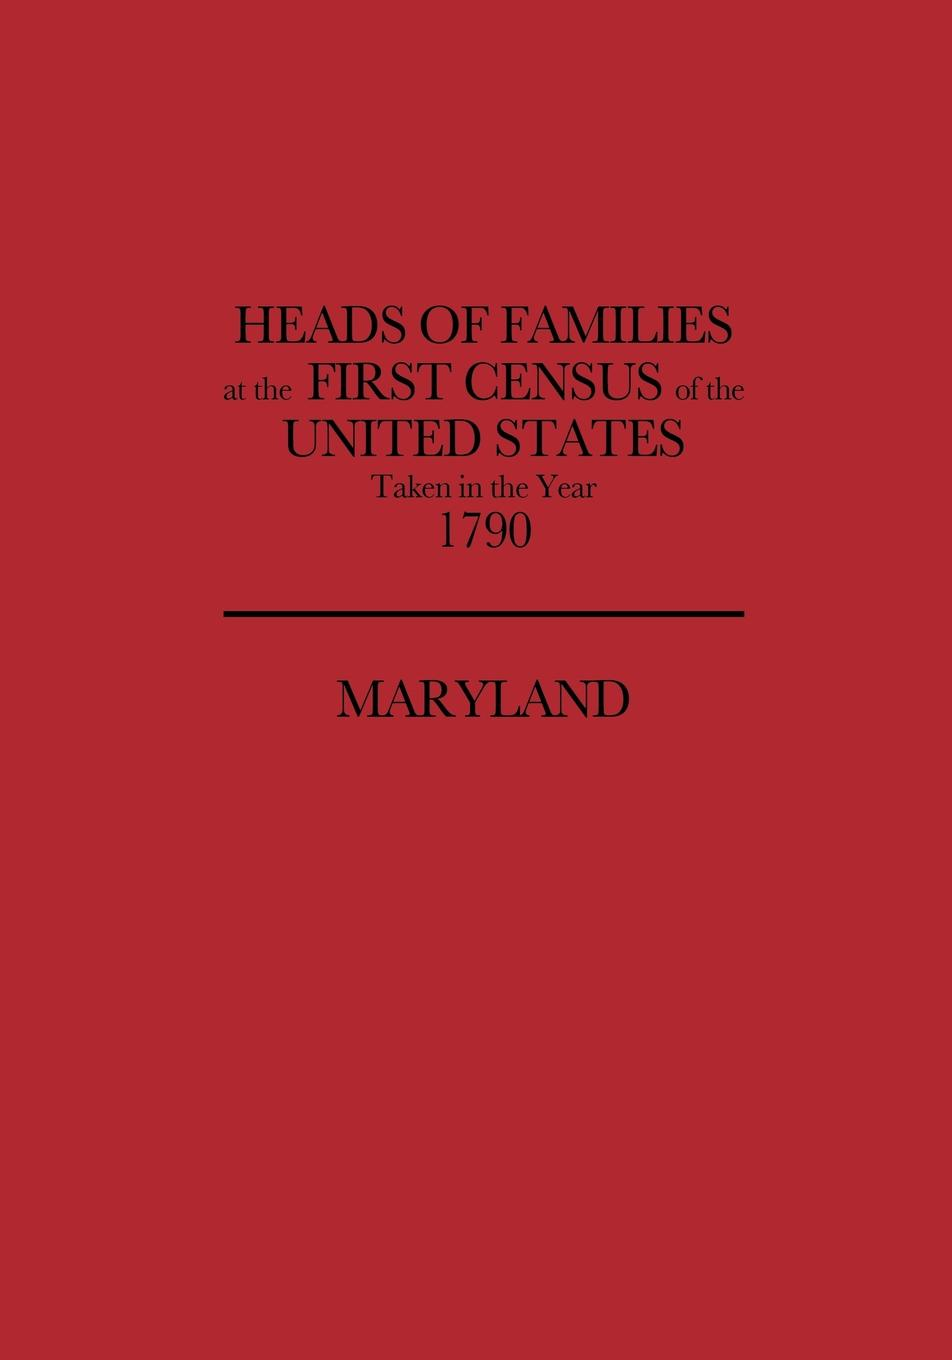 цена на U S Bureau of the Census, United States, Bureau Of the Census United States Heads of Families at the First Census of the United States, Taken in the Year 1790. Maryland